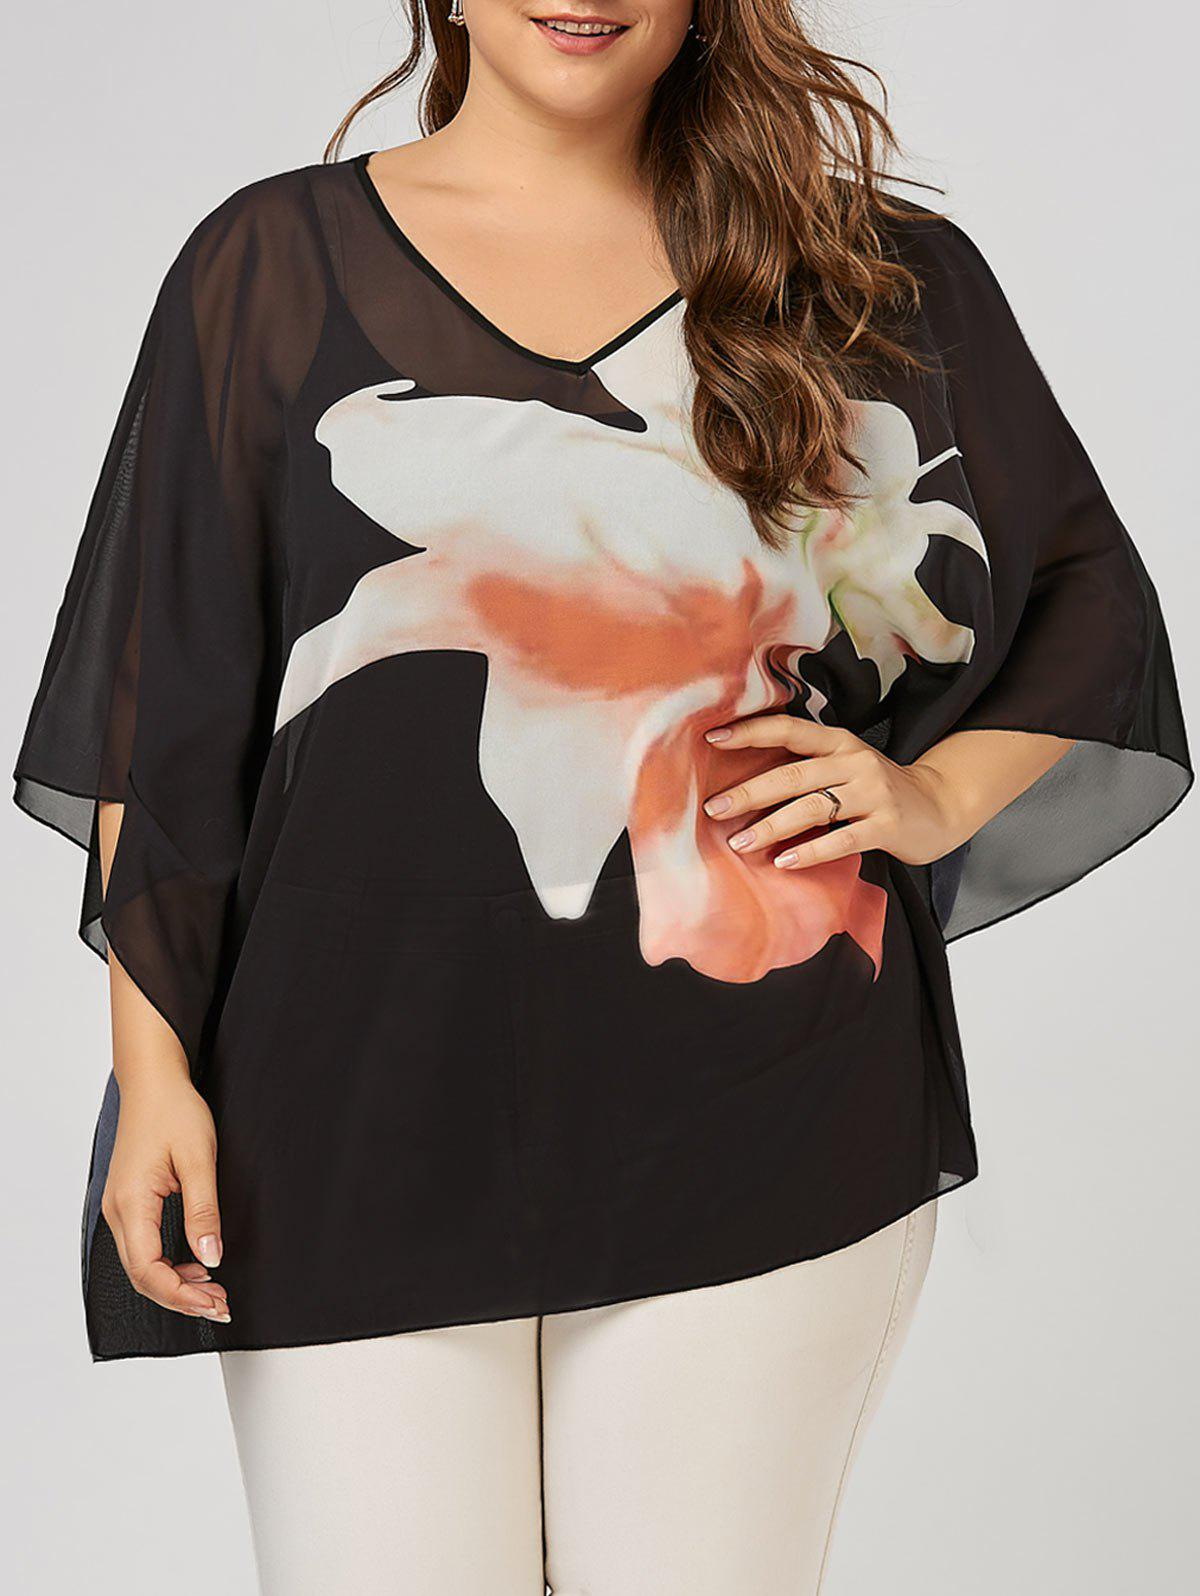 8e5104a914f0 31% OFF] Plus Size Floral Pattern V Neck Batwing Sleeve Tunic Top ...